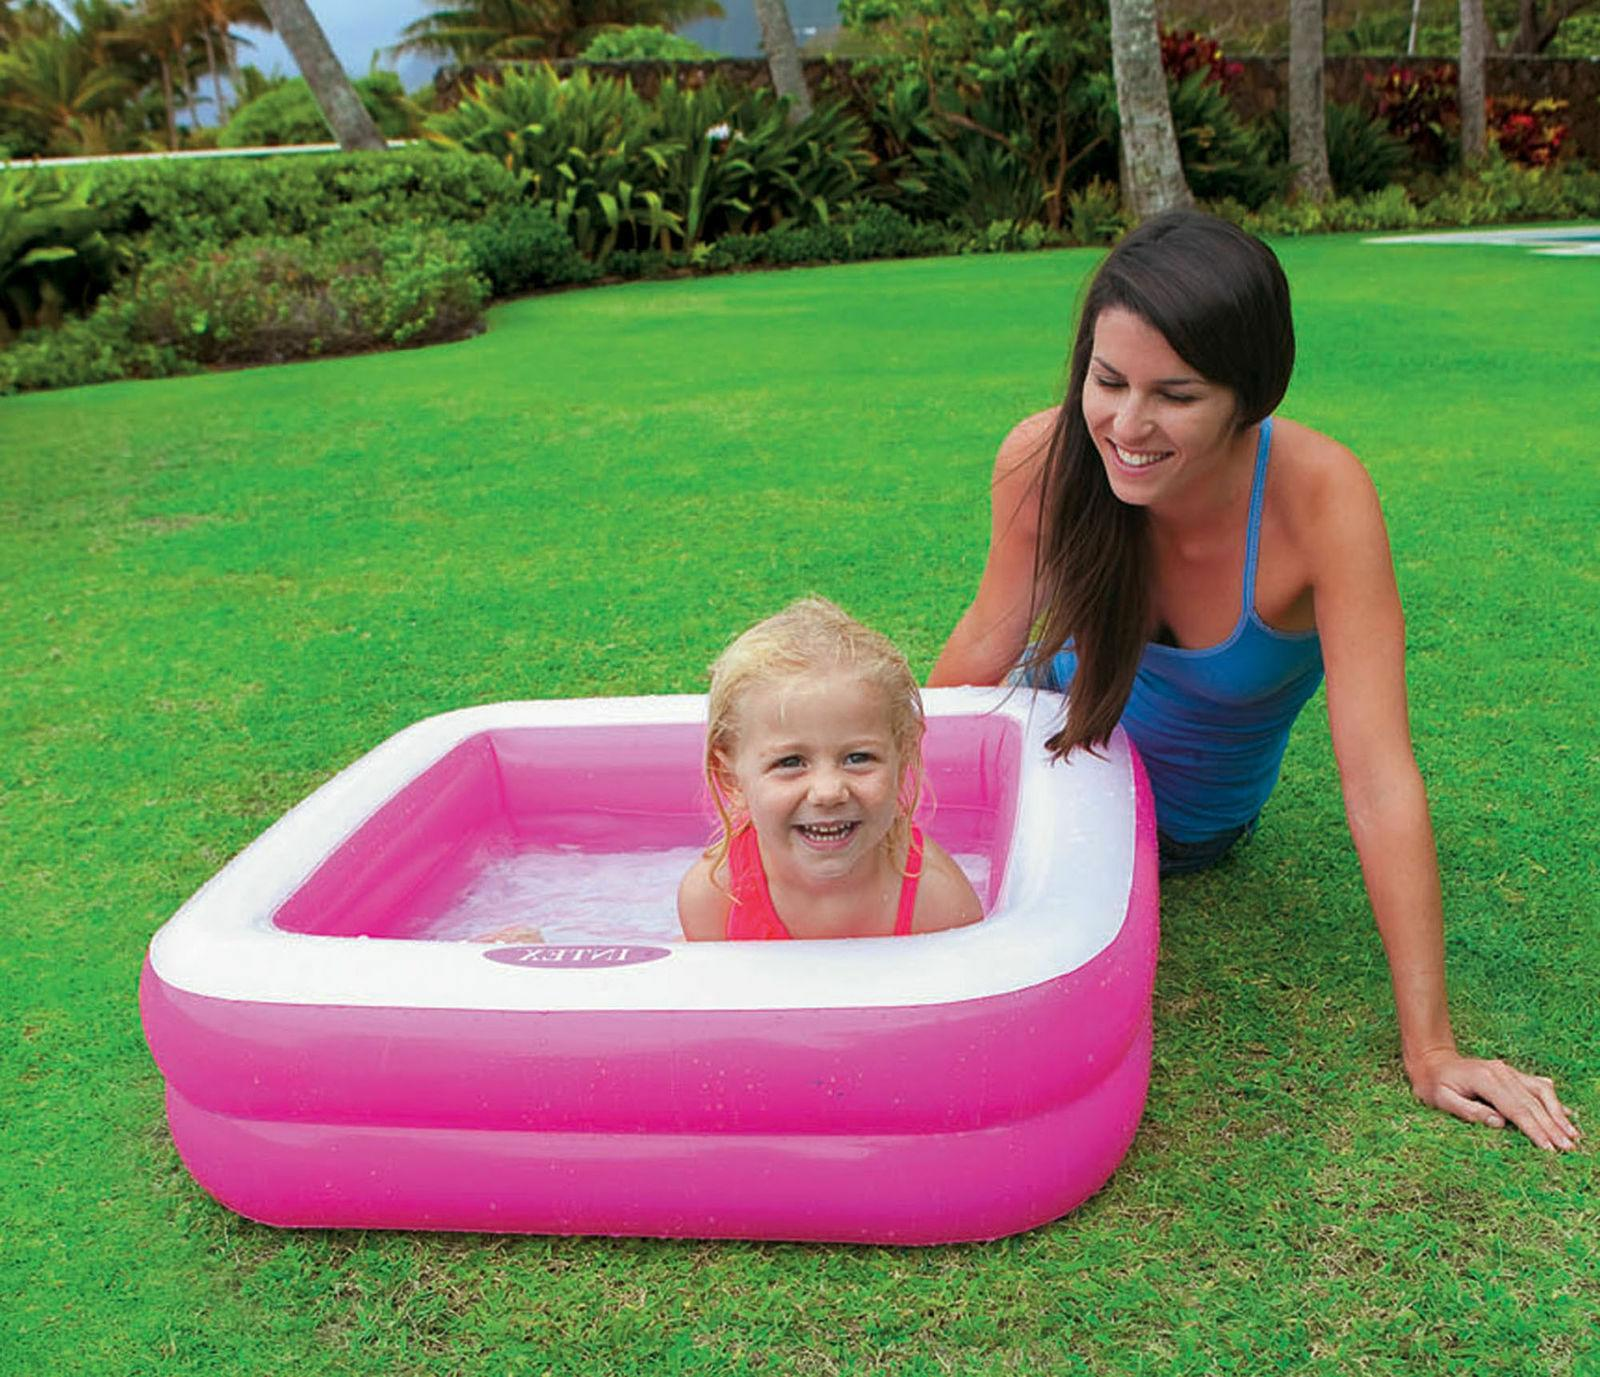 Intex Play Pool Inflatable Kiddie Padded Pink Green